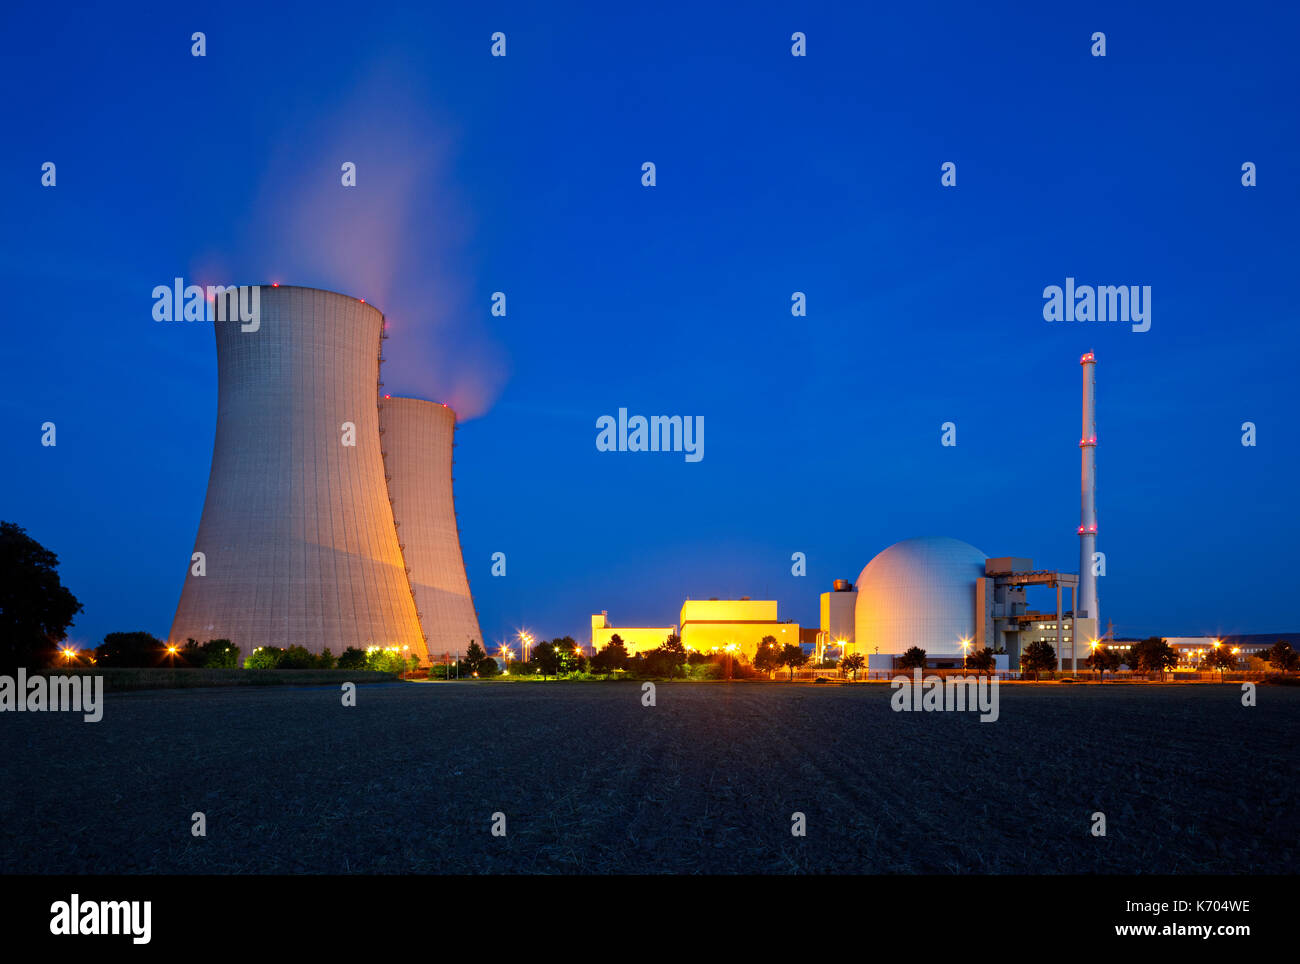 A nuclear power plant with night blue sky. - Stock Image